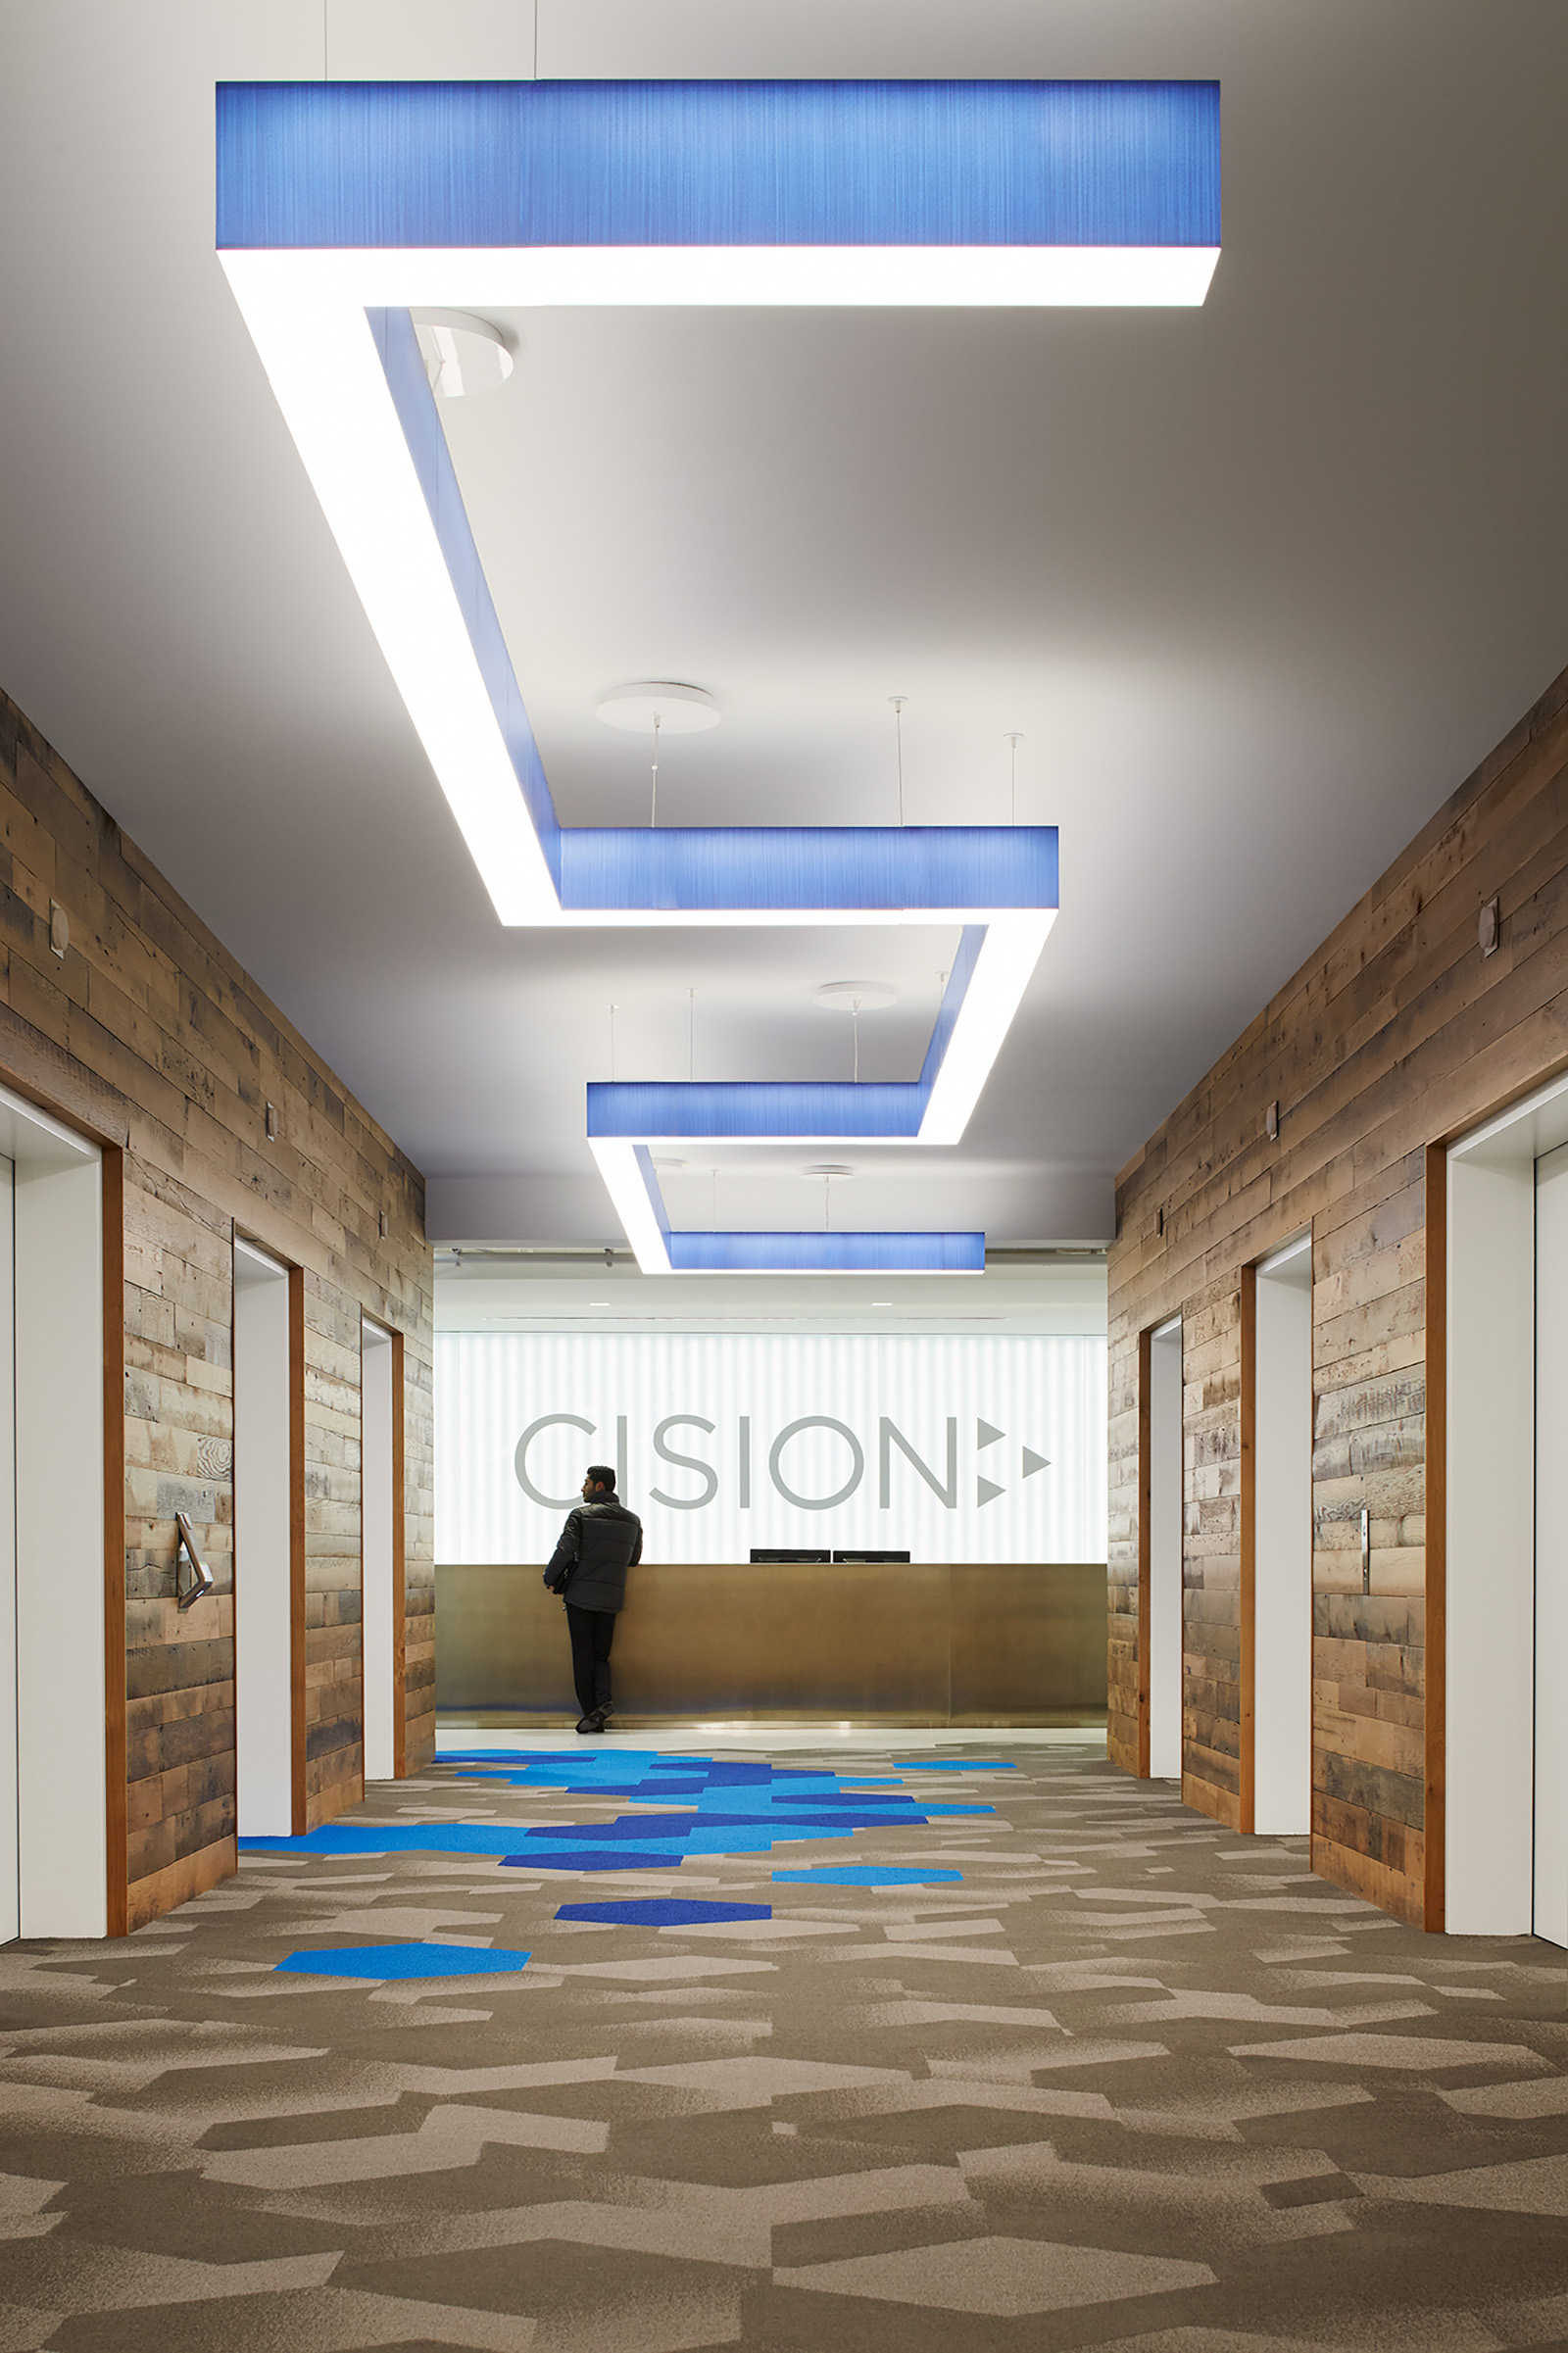 Gallery Corporate Cision Cooledge Lighting